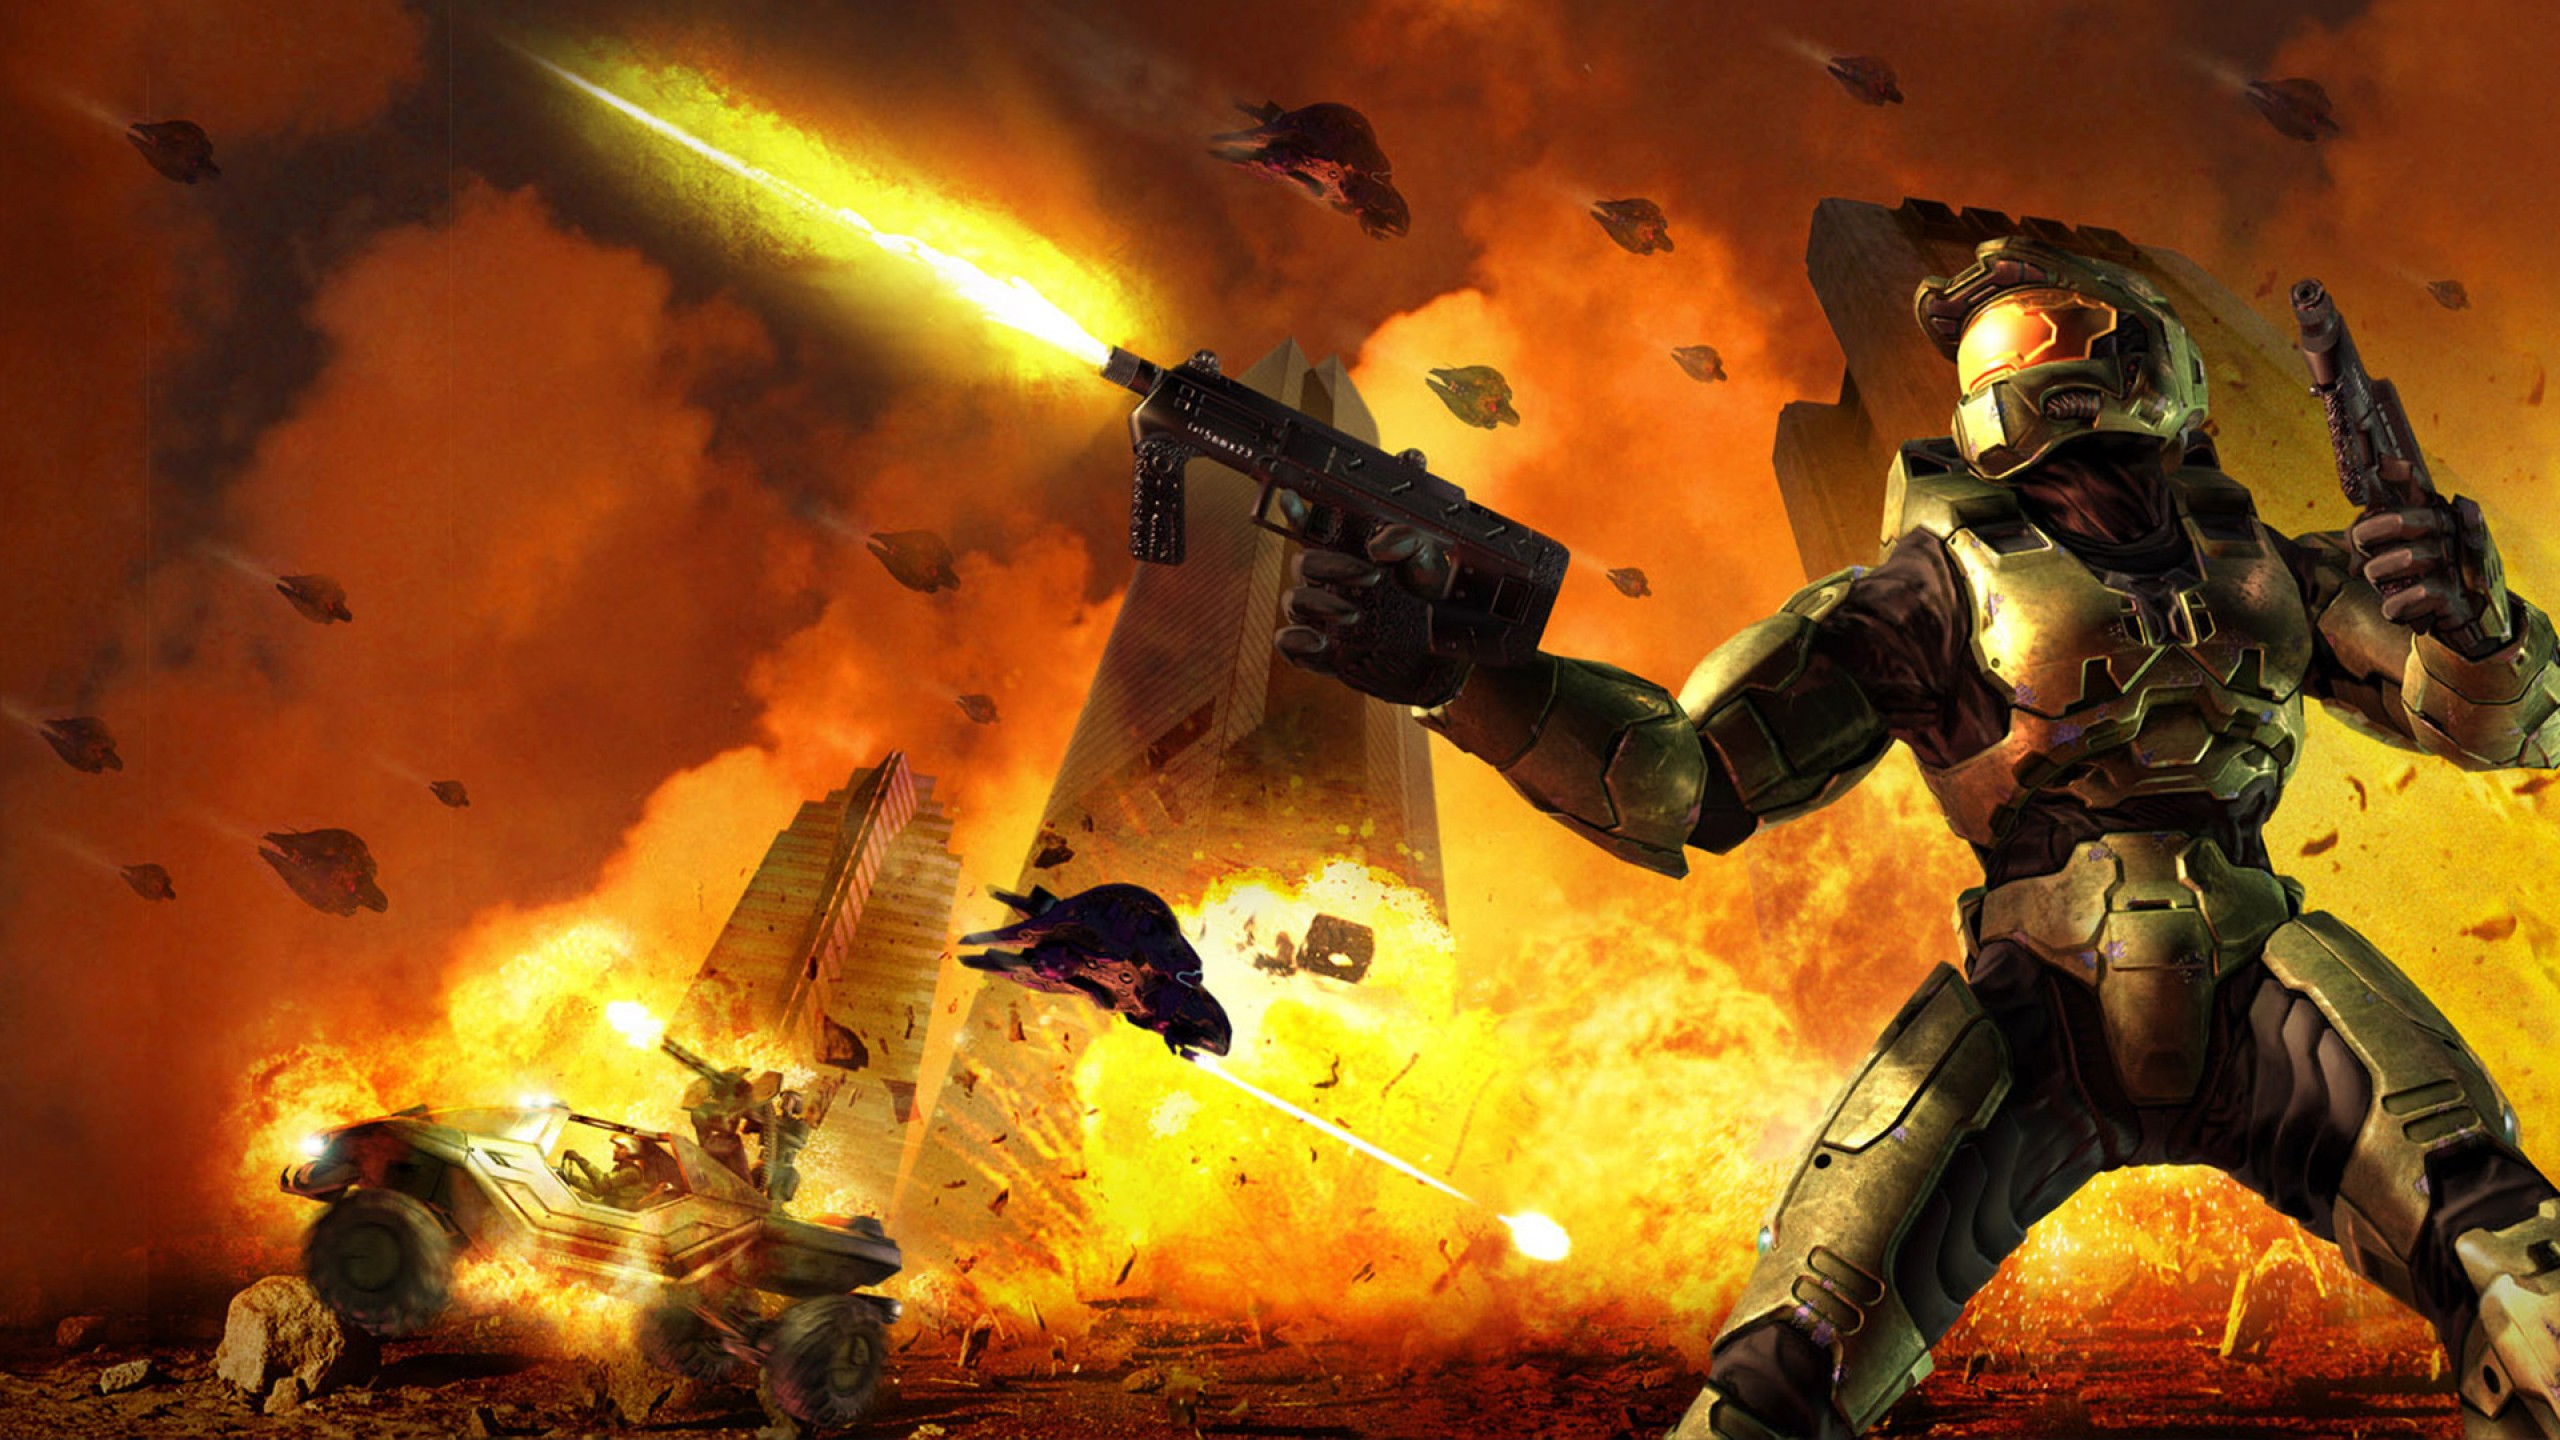 Halo 2 Wallpaper Full HD And Background Image